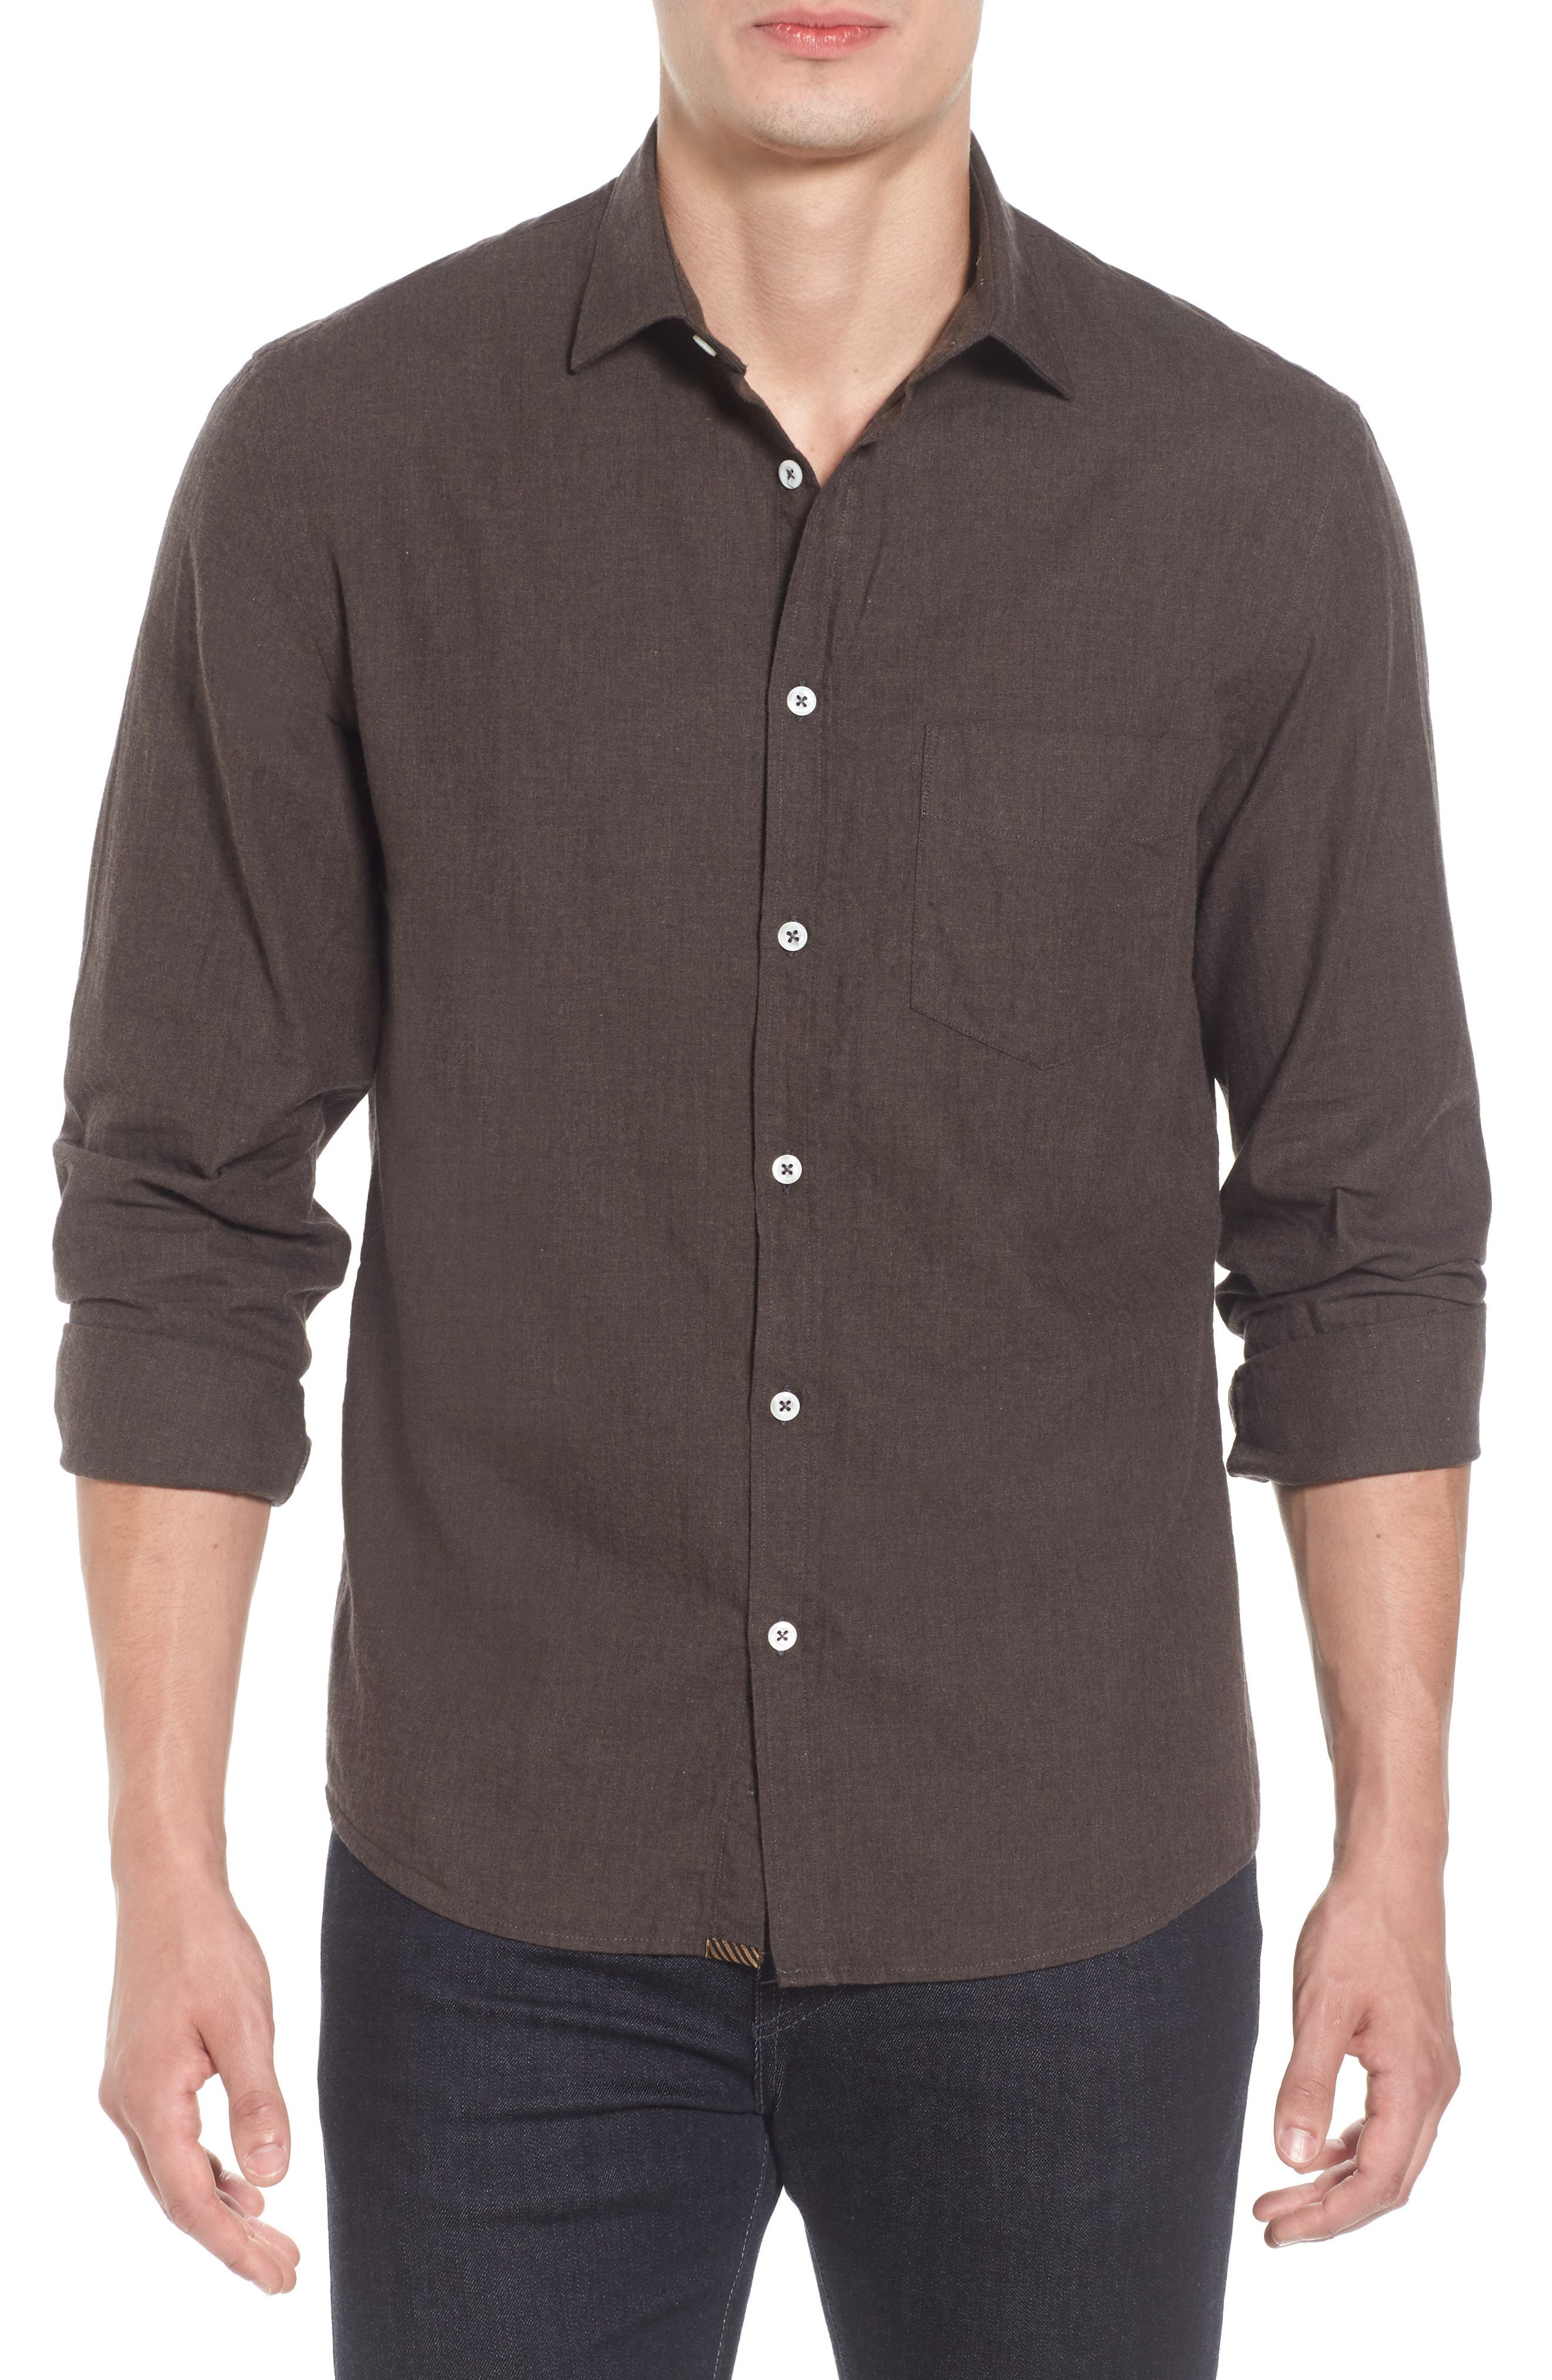 Billy Reid John T Standard Fit Herringbone Shirt